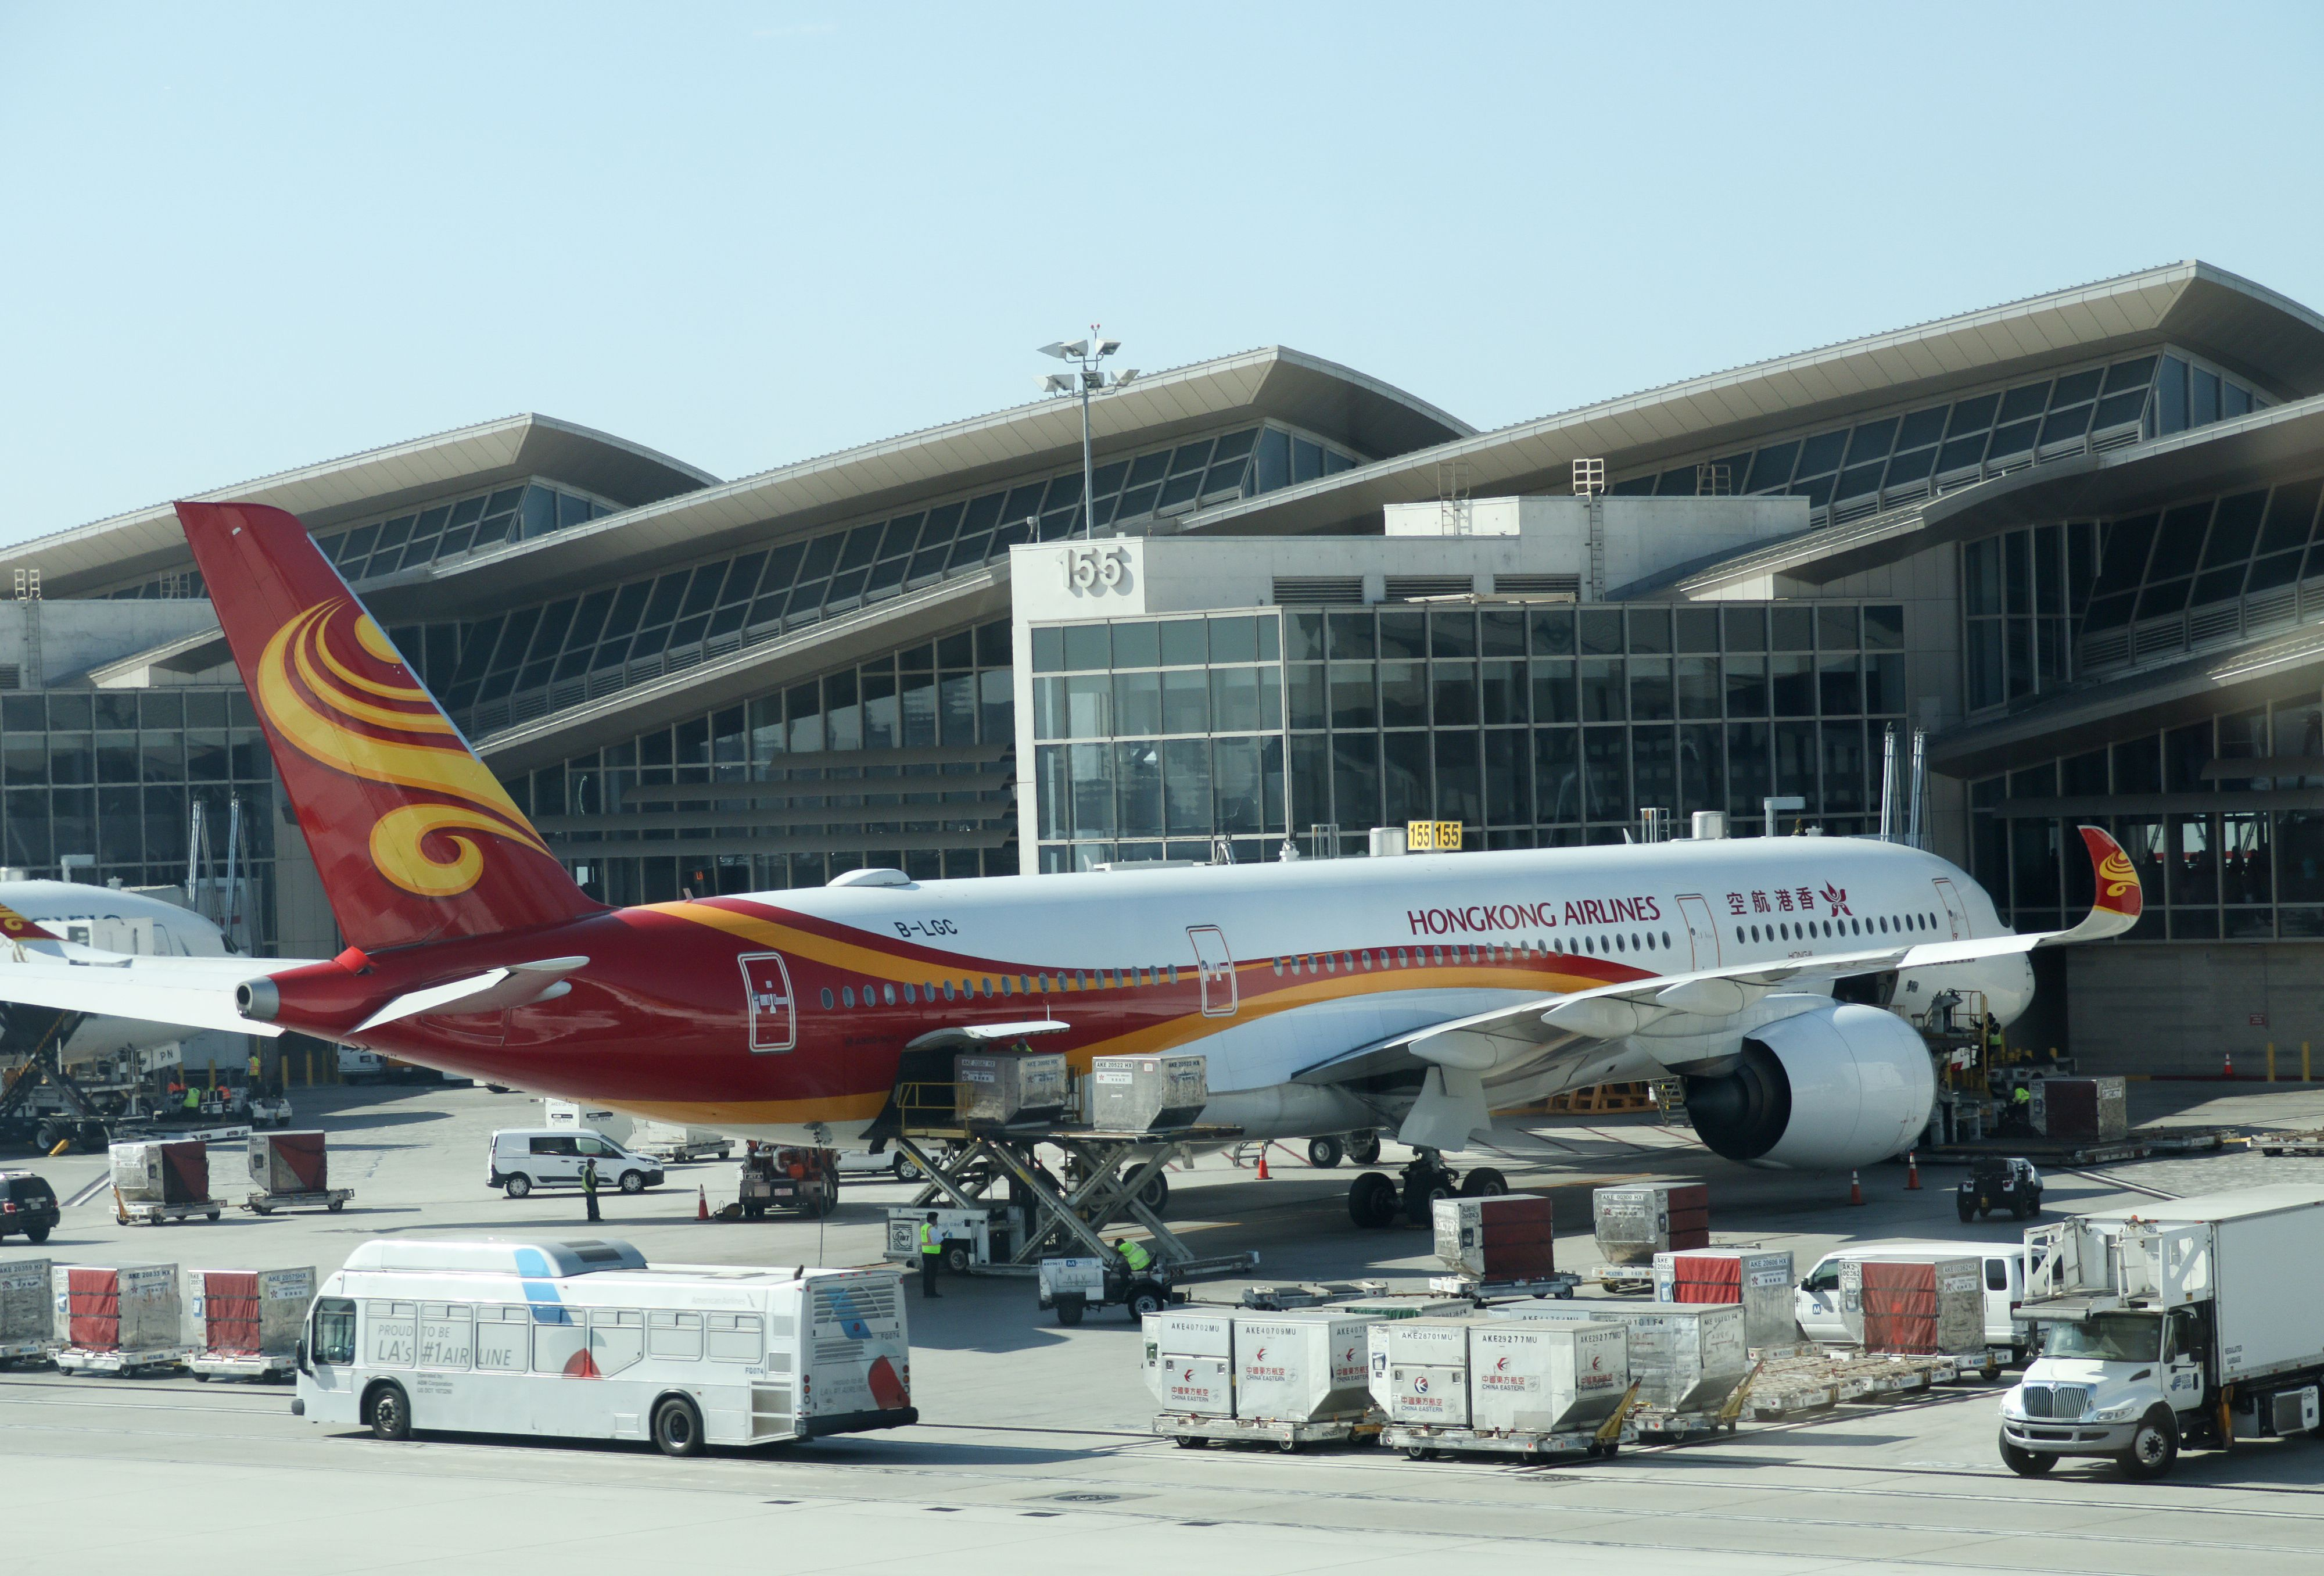 A Hong Kong Airlines plane at Los Angeles International Airport on October 29, 2019.